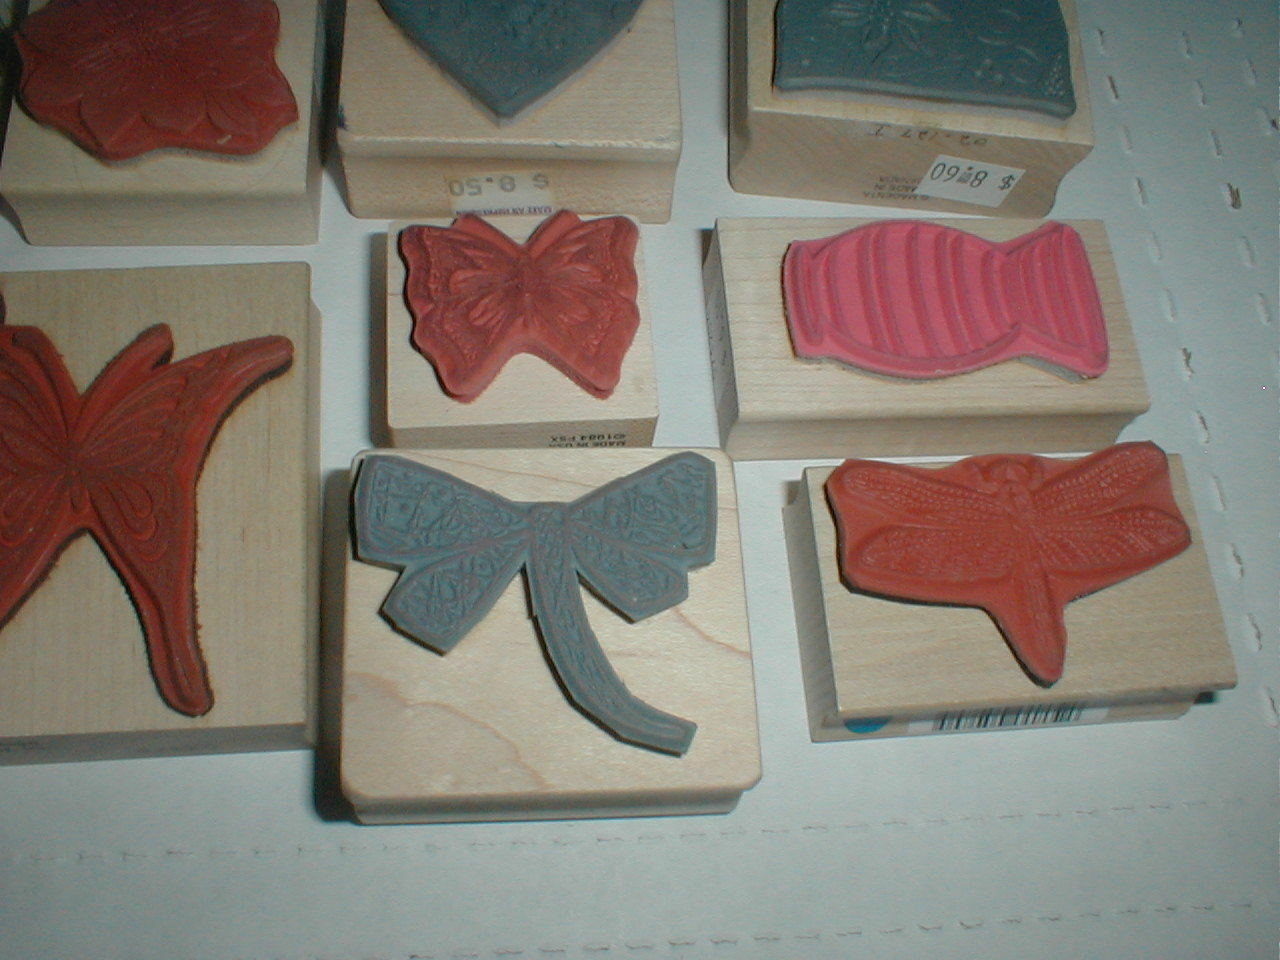 Large Rubber Ink Hand Stamp LOT Butterfly Heart Floral Flower SnowMan Wood Block - $19.98